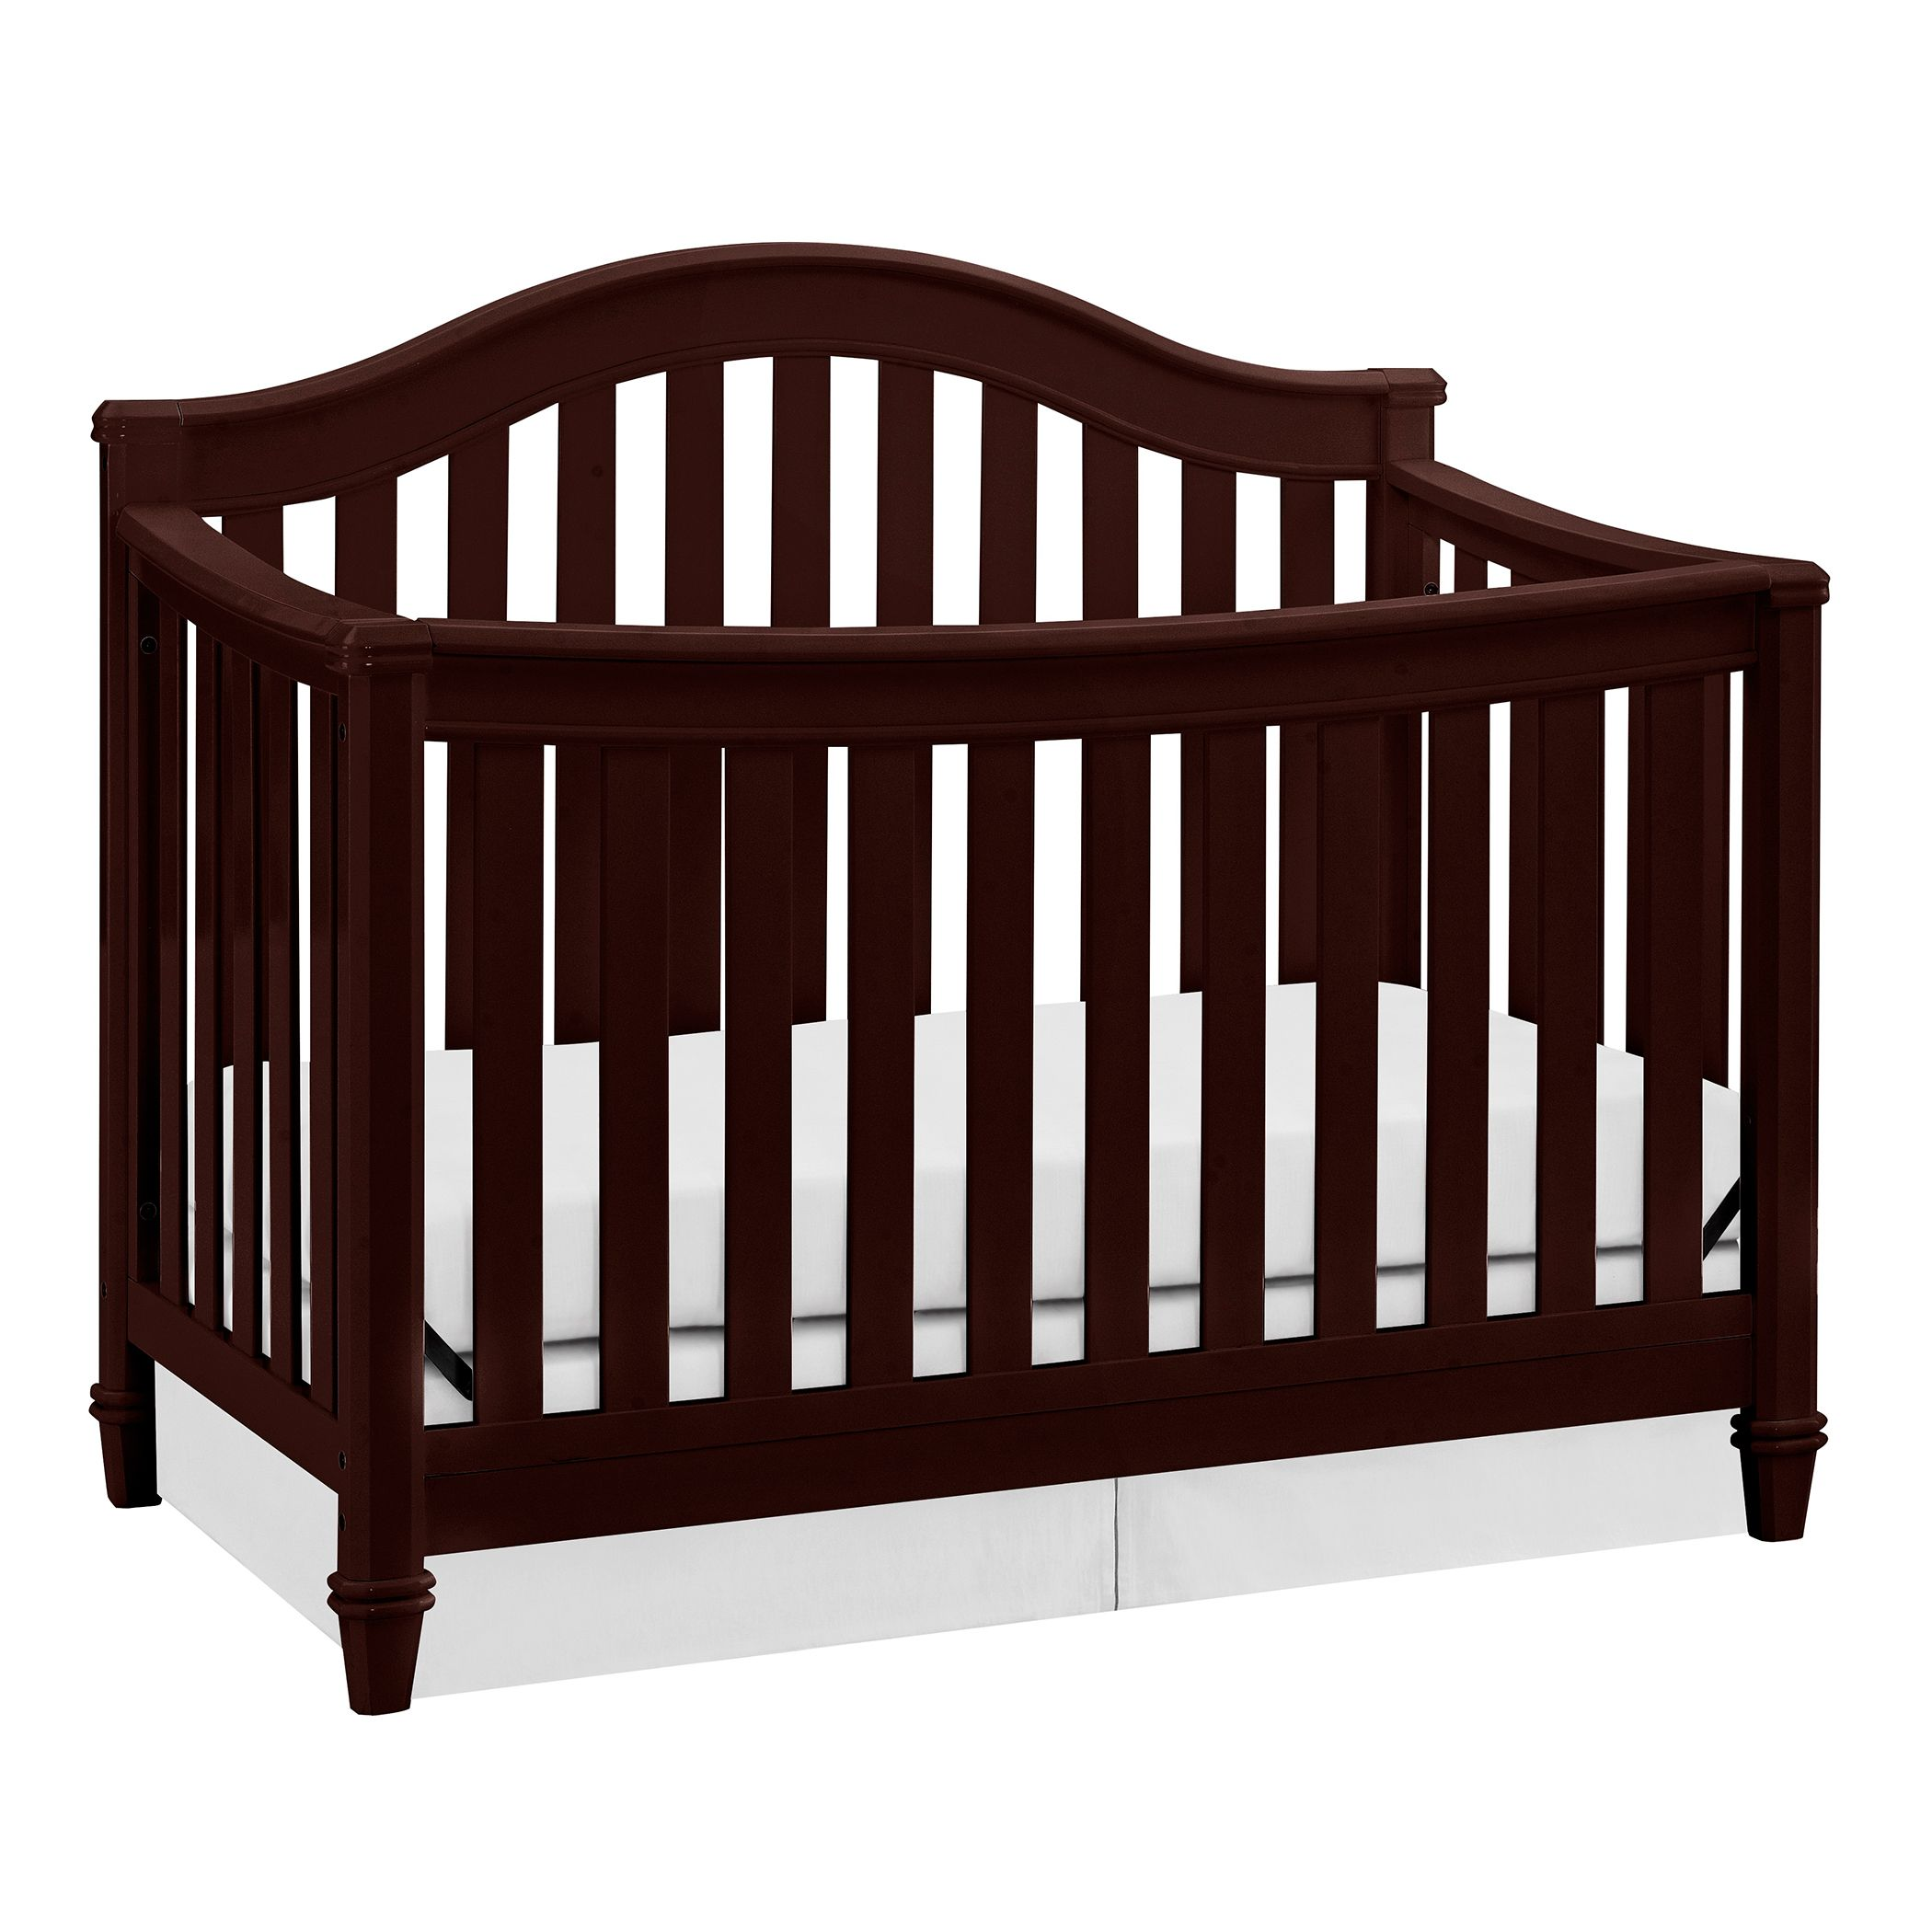 Thomasville Kids Auburn 4 In 1 Convertible Crib